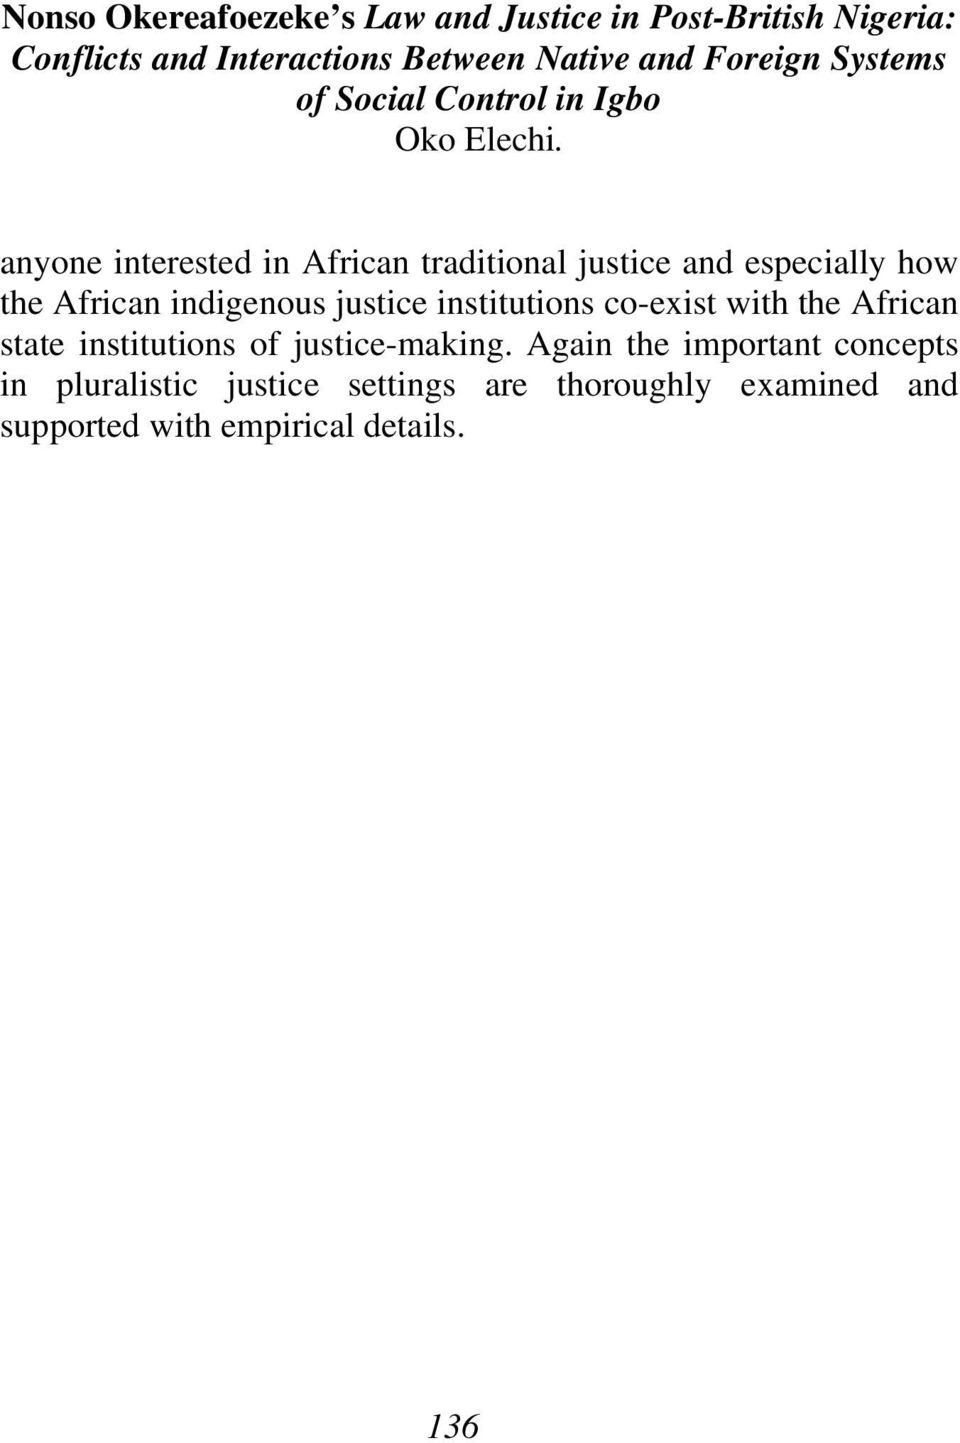 anyone interested in African traditional justice and especially how the African indigenous justice institutions